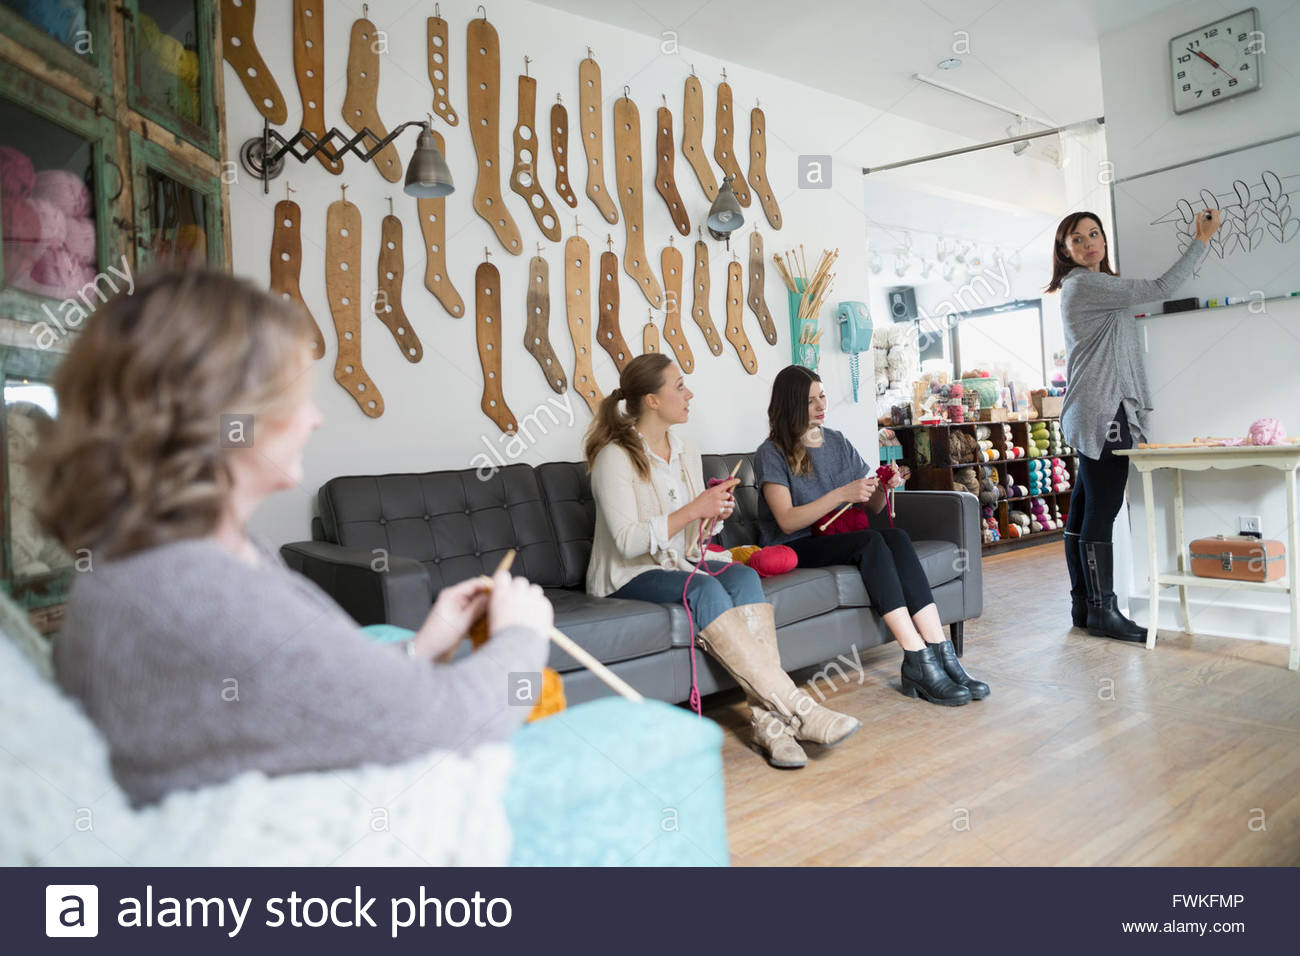 Instructor guiding knitting class at whiteboard yarn store - Stock Image